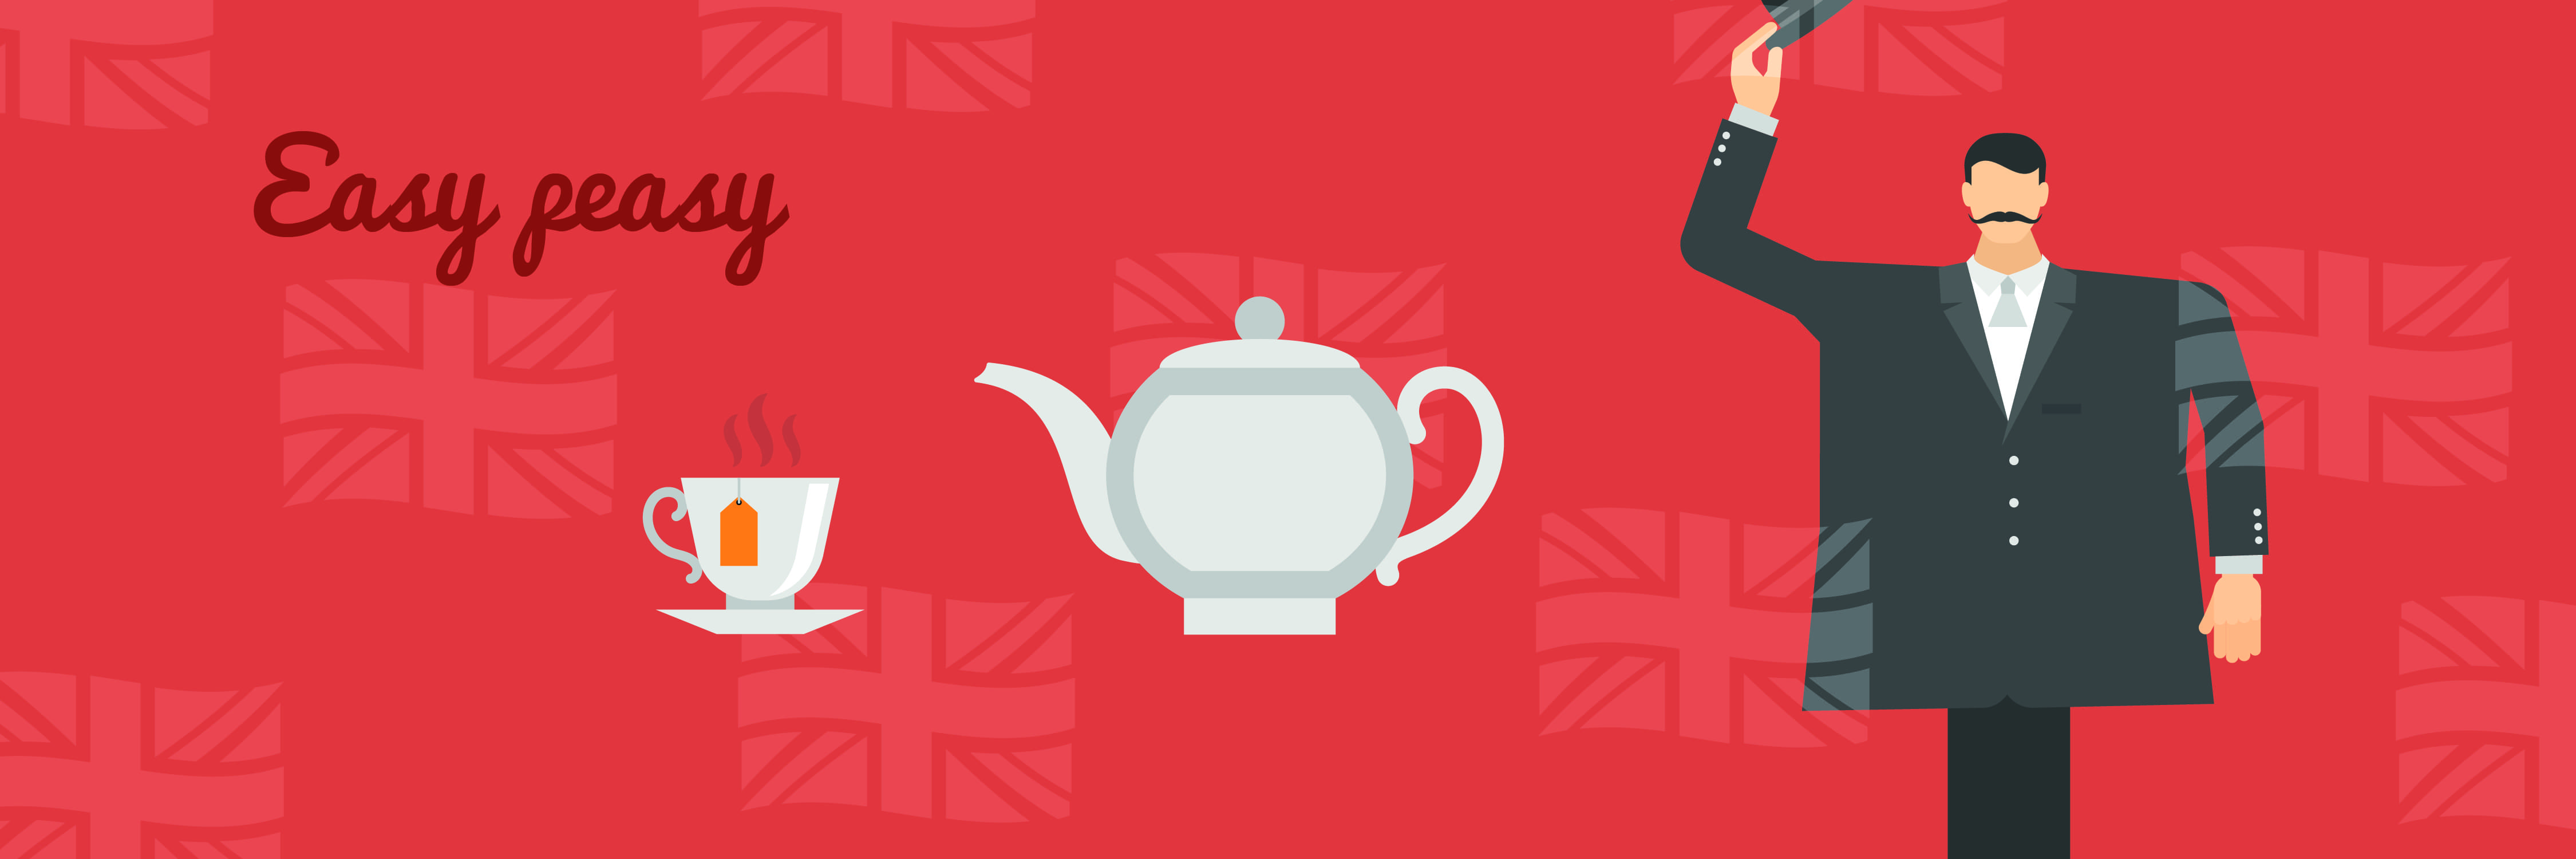 british-accents-in-voice-acting-with-british-voice-actors-teapot-sir